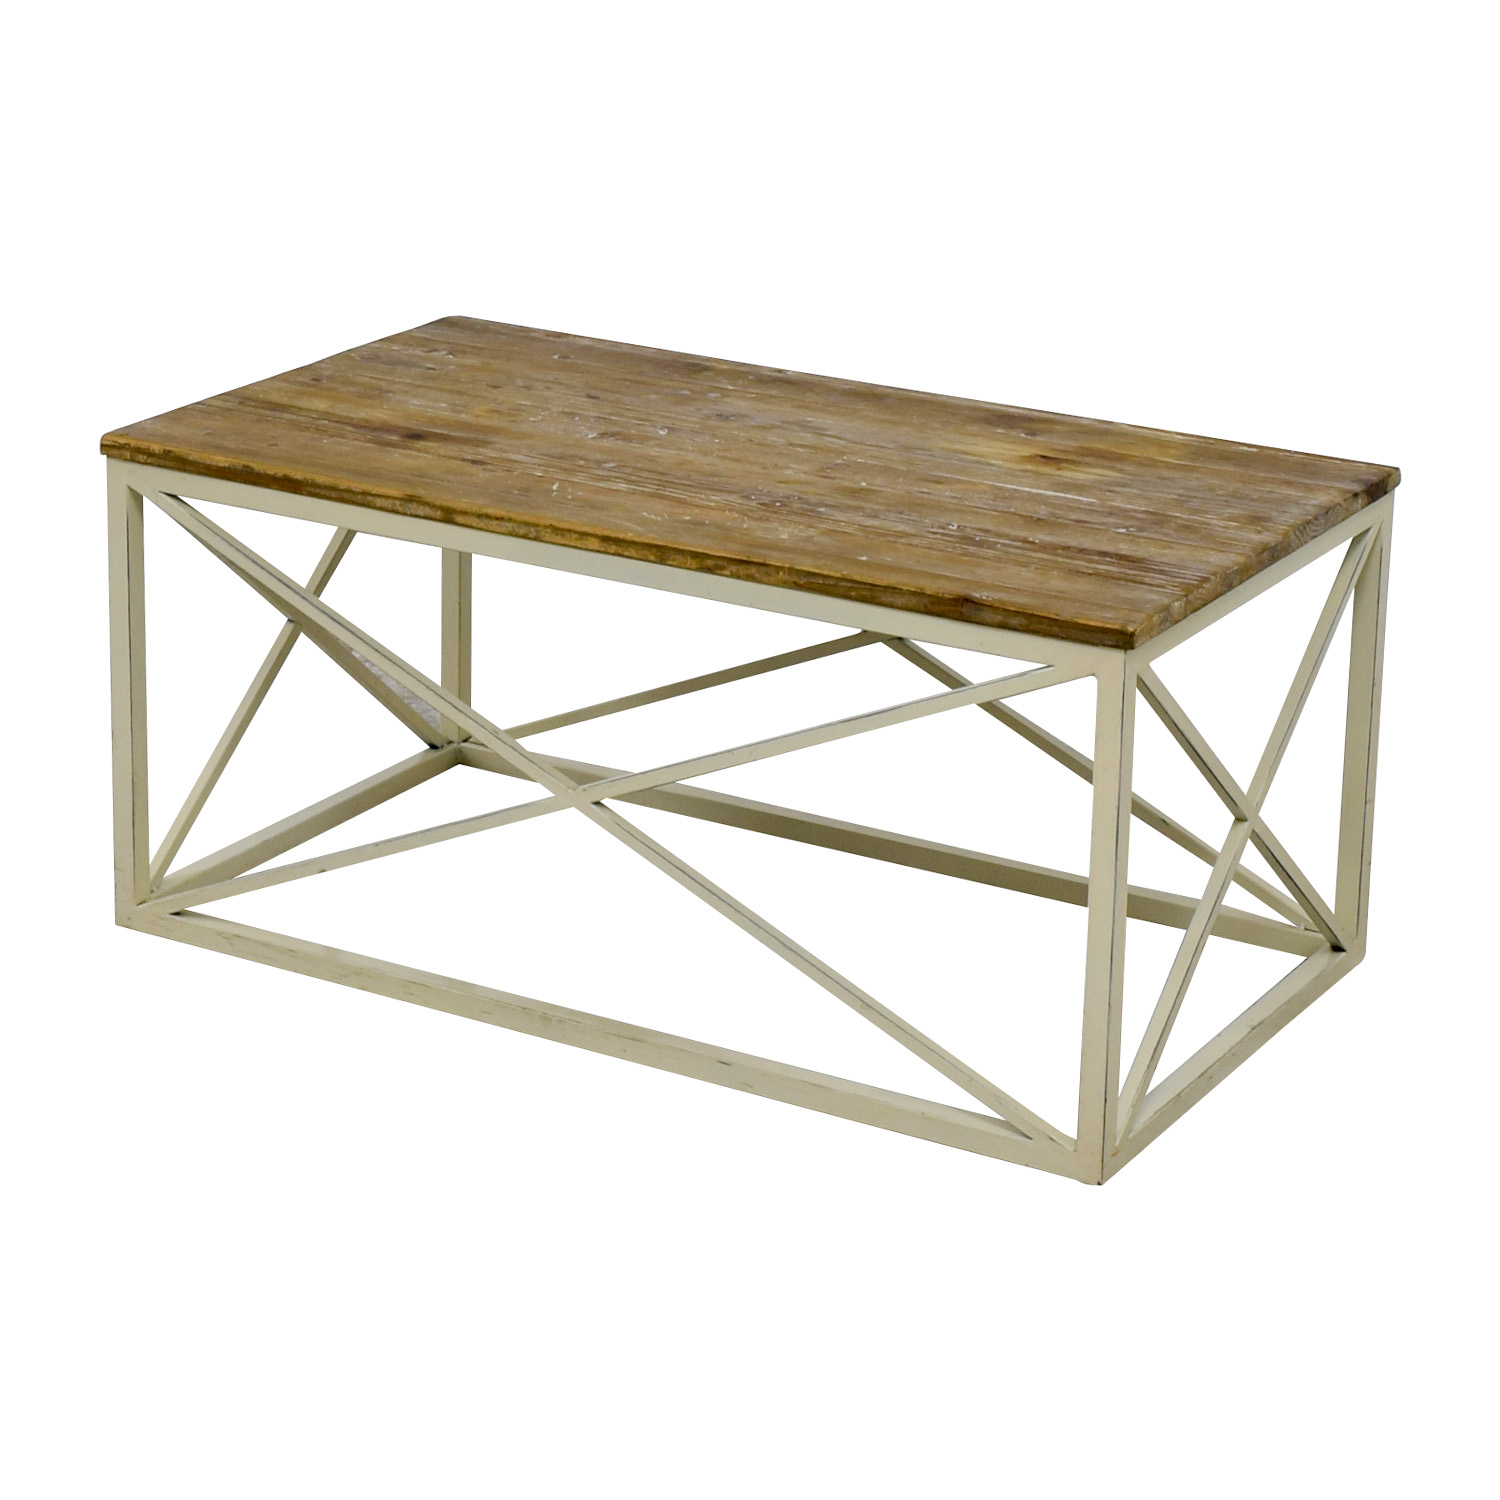 67 Off Wayfair Wayfair Wooden And Metal Coffee Table